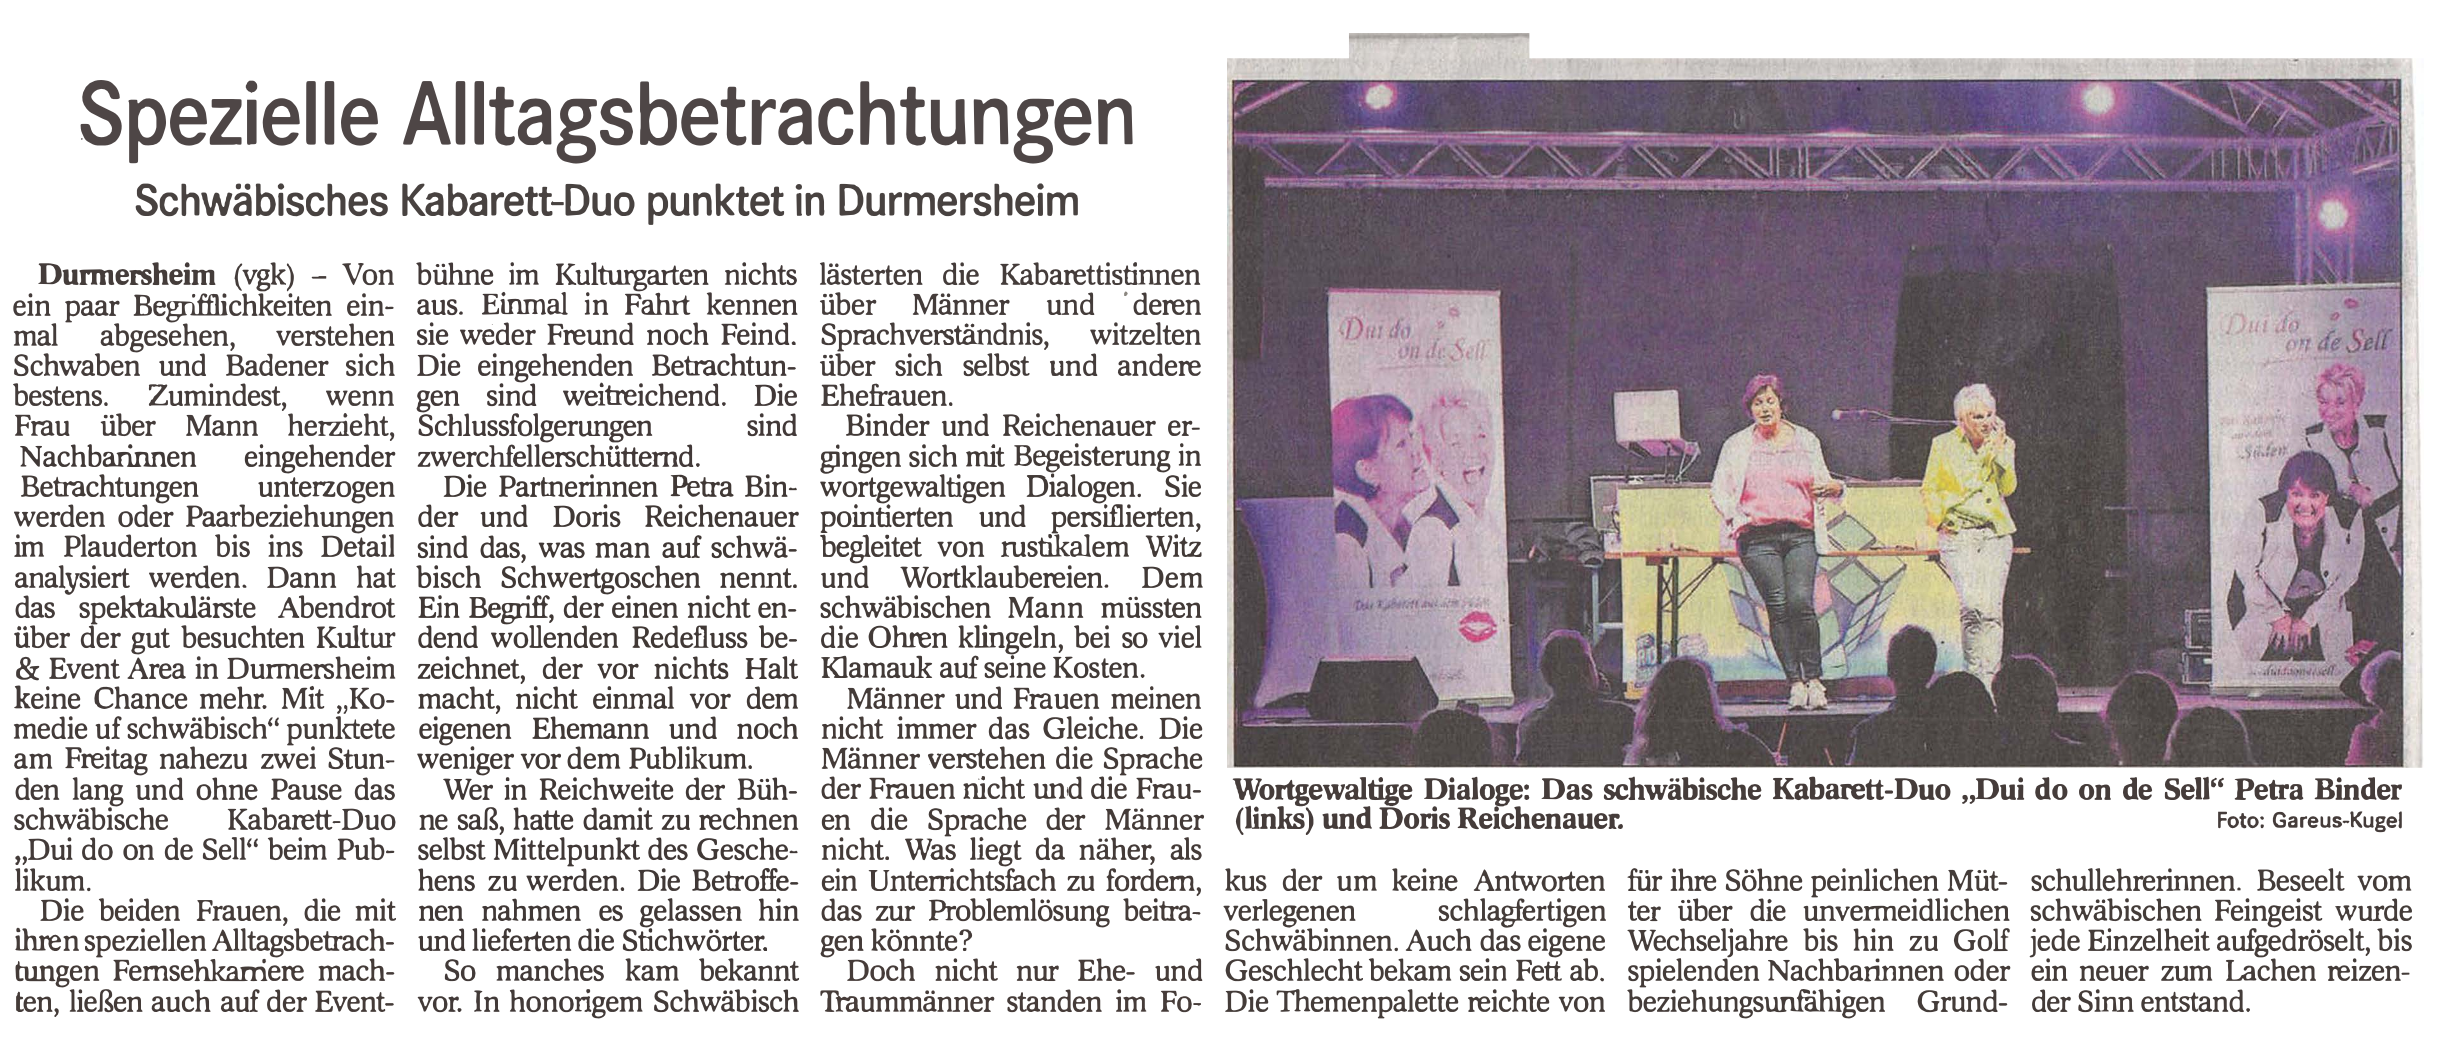 we rock durmersheim - eventagentur Bülow